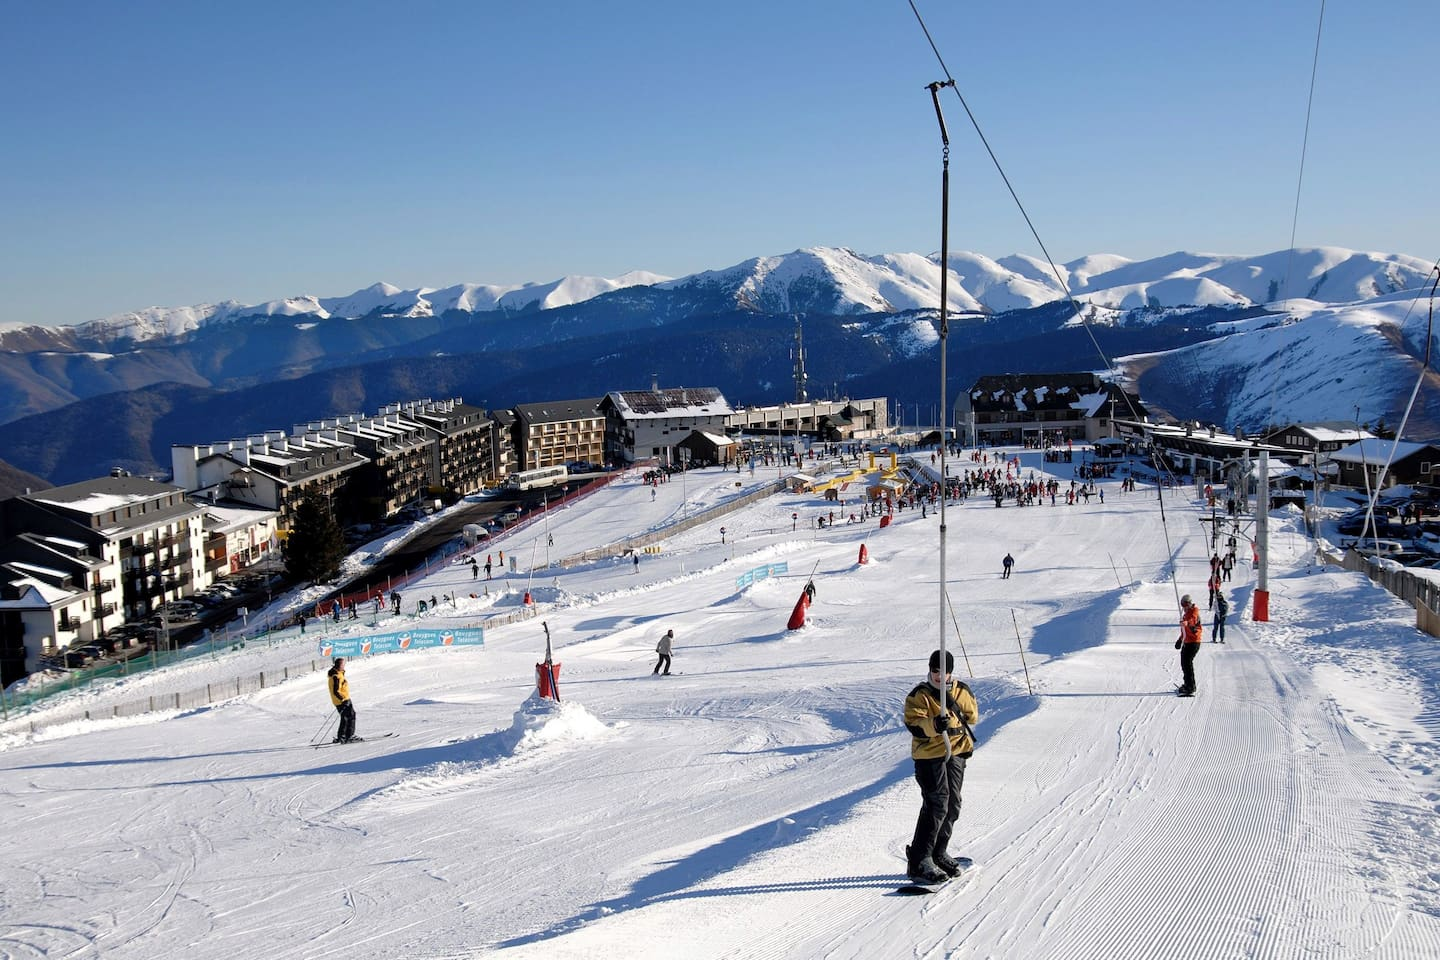 Experience fantastic skiing and snowboarding when you stay here!